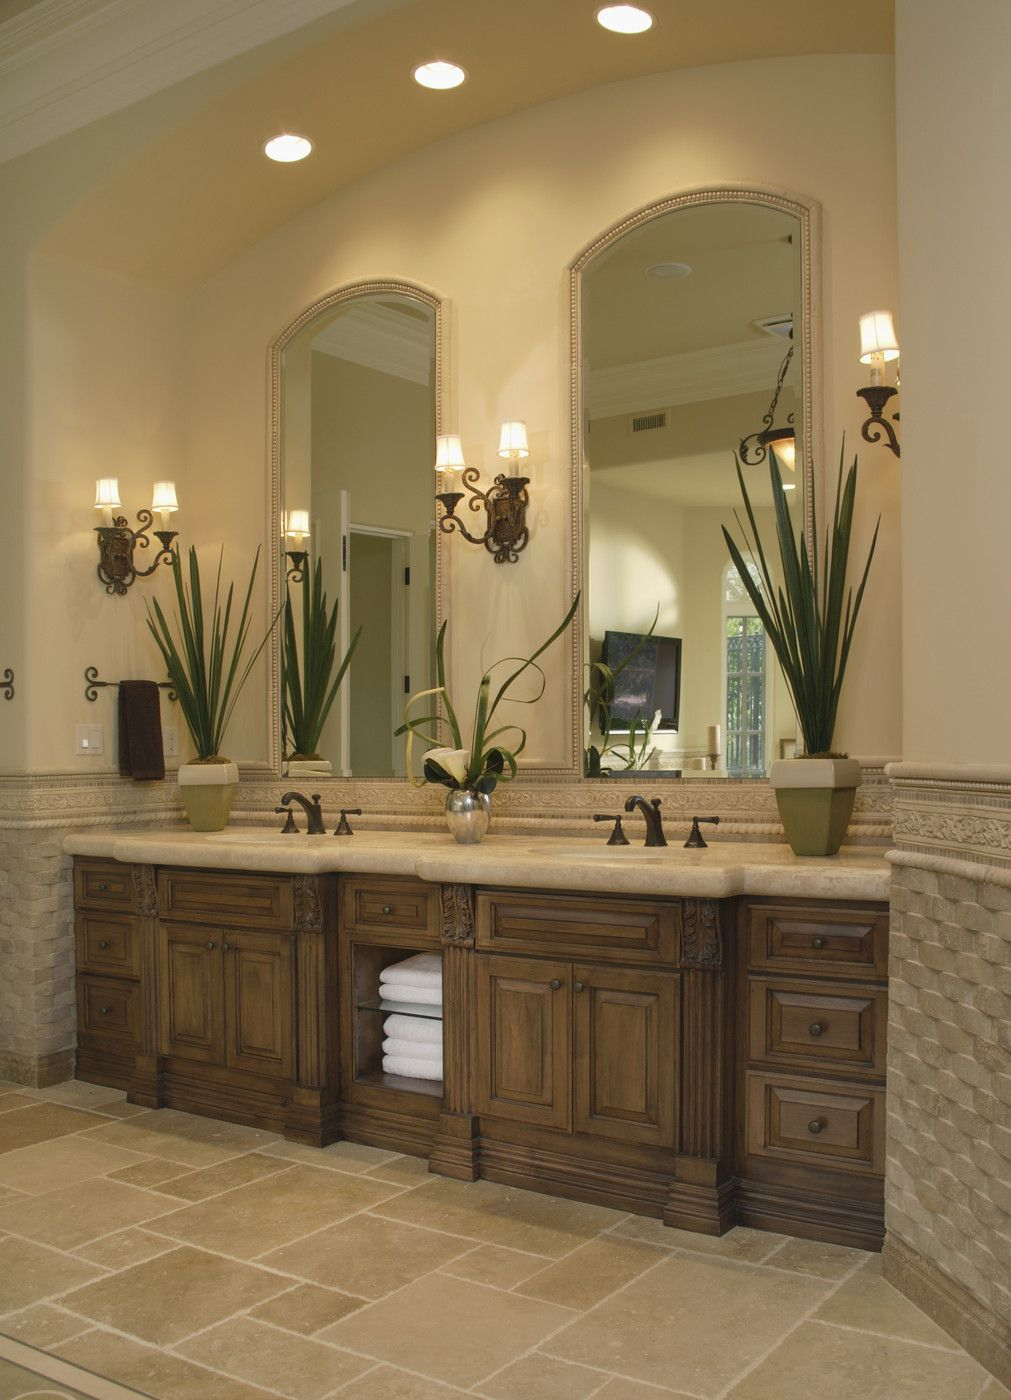 vanity bathroom lights maribo intelligentsolutions co